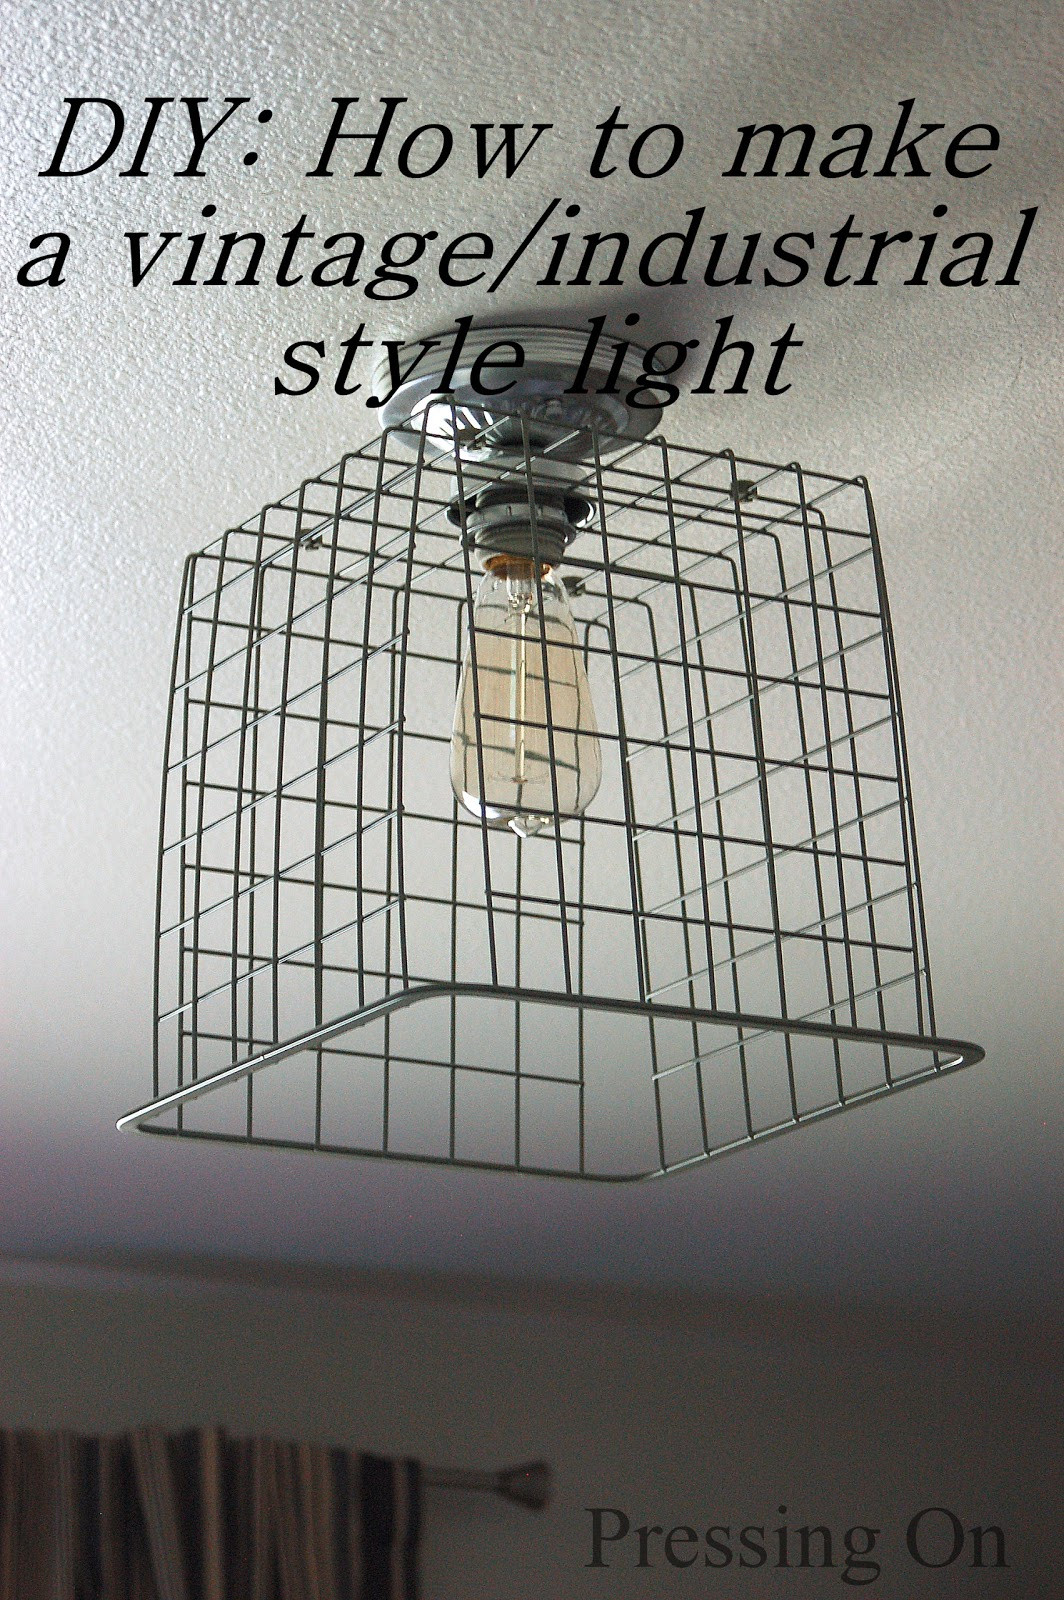 Best ideas about DIY Ceiling Lighting . Save or Pin Pressing DIY Vintage Industrial Style Ceiling Light Now.